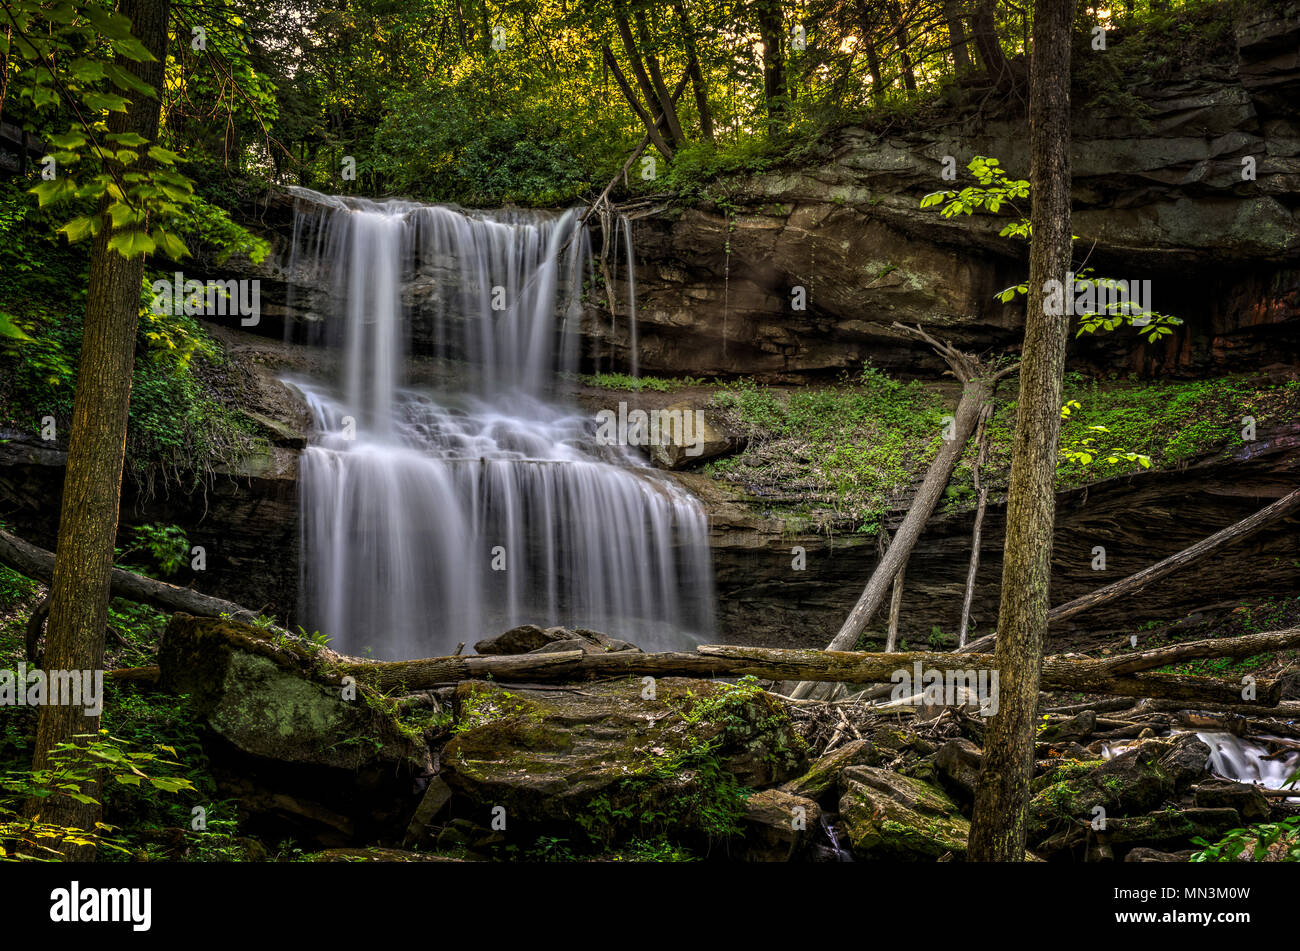 Quakertown Falls is a fifty foot waterfall on Falling Spring Creek located just northwest of the town of Hillsville in Mahoning Township Pennsylvania. - Stock Image